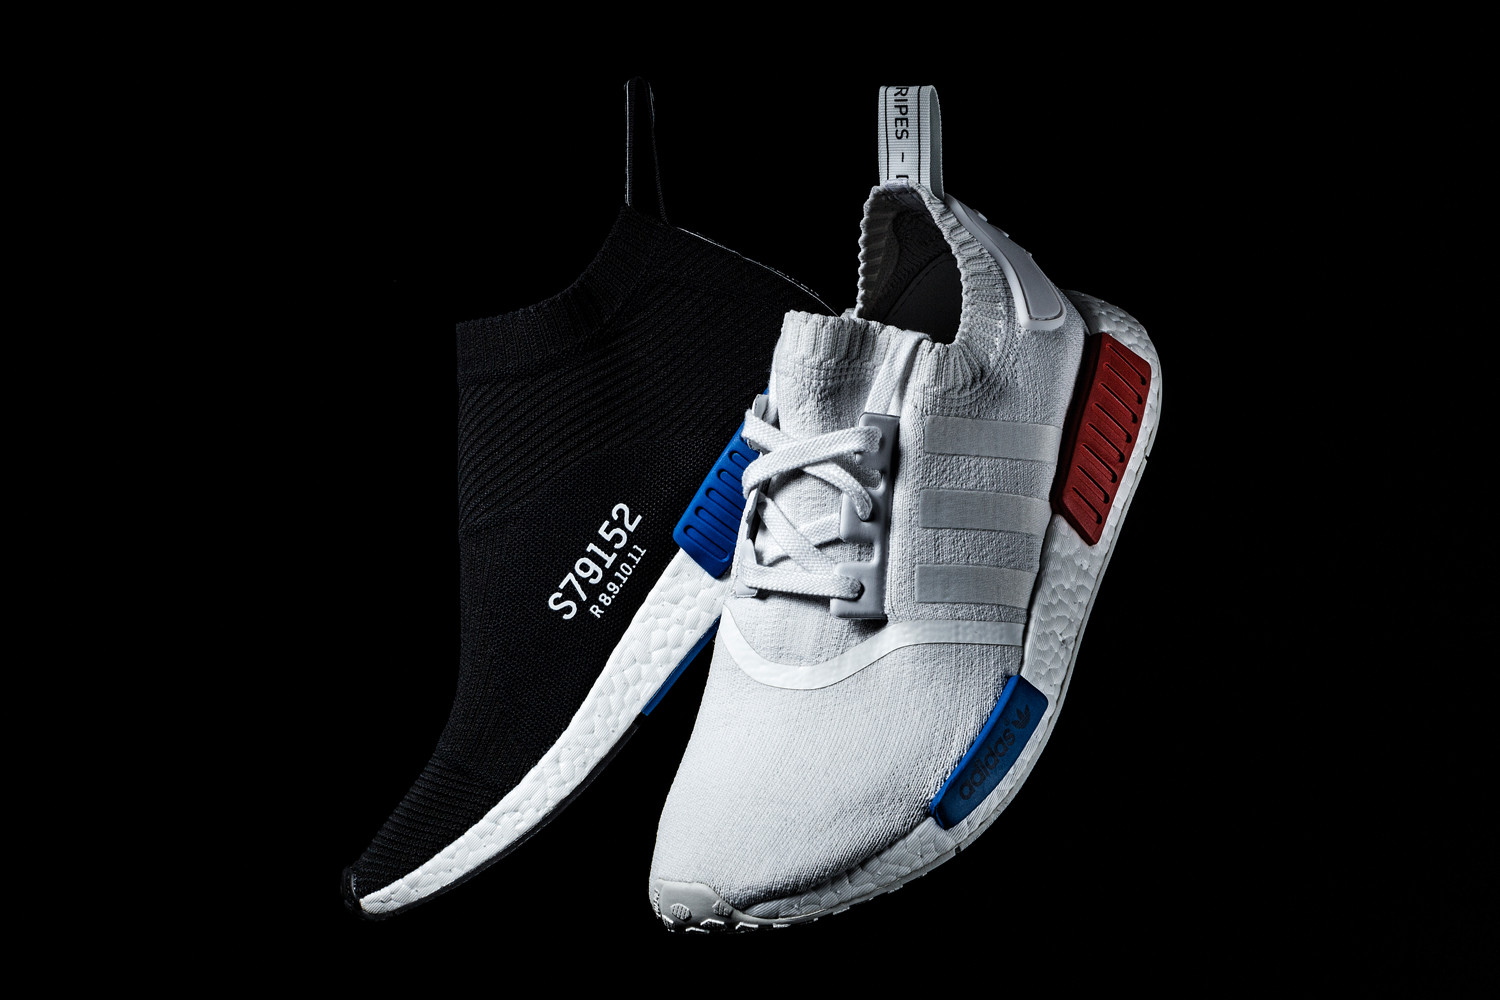 8fca520b71511 adidas Originals NMD City Sock and R1 Primeknit in New Colorways ...